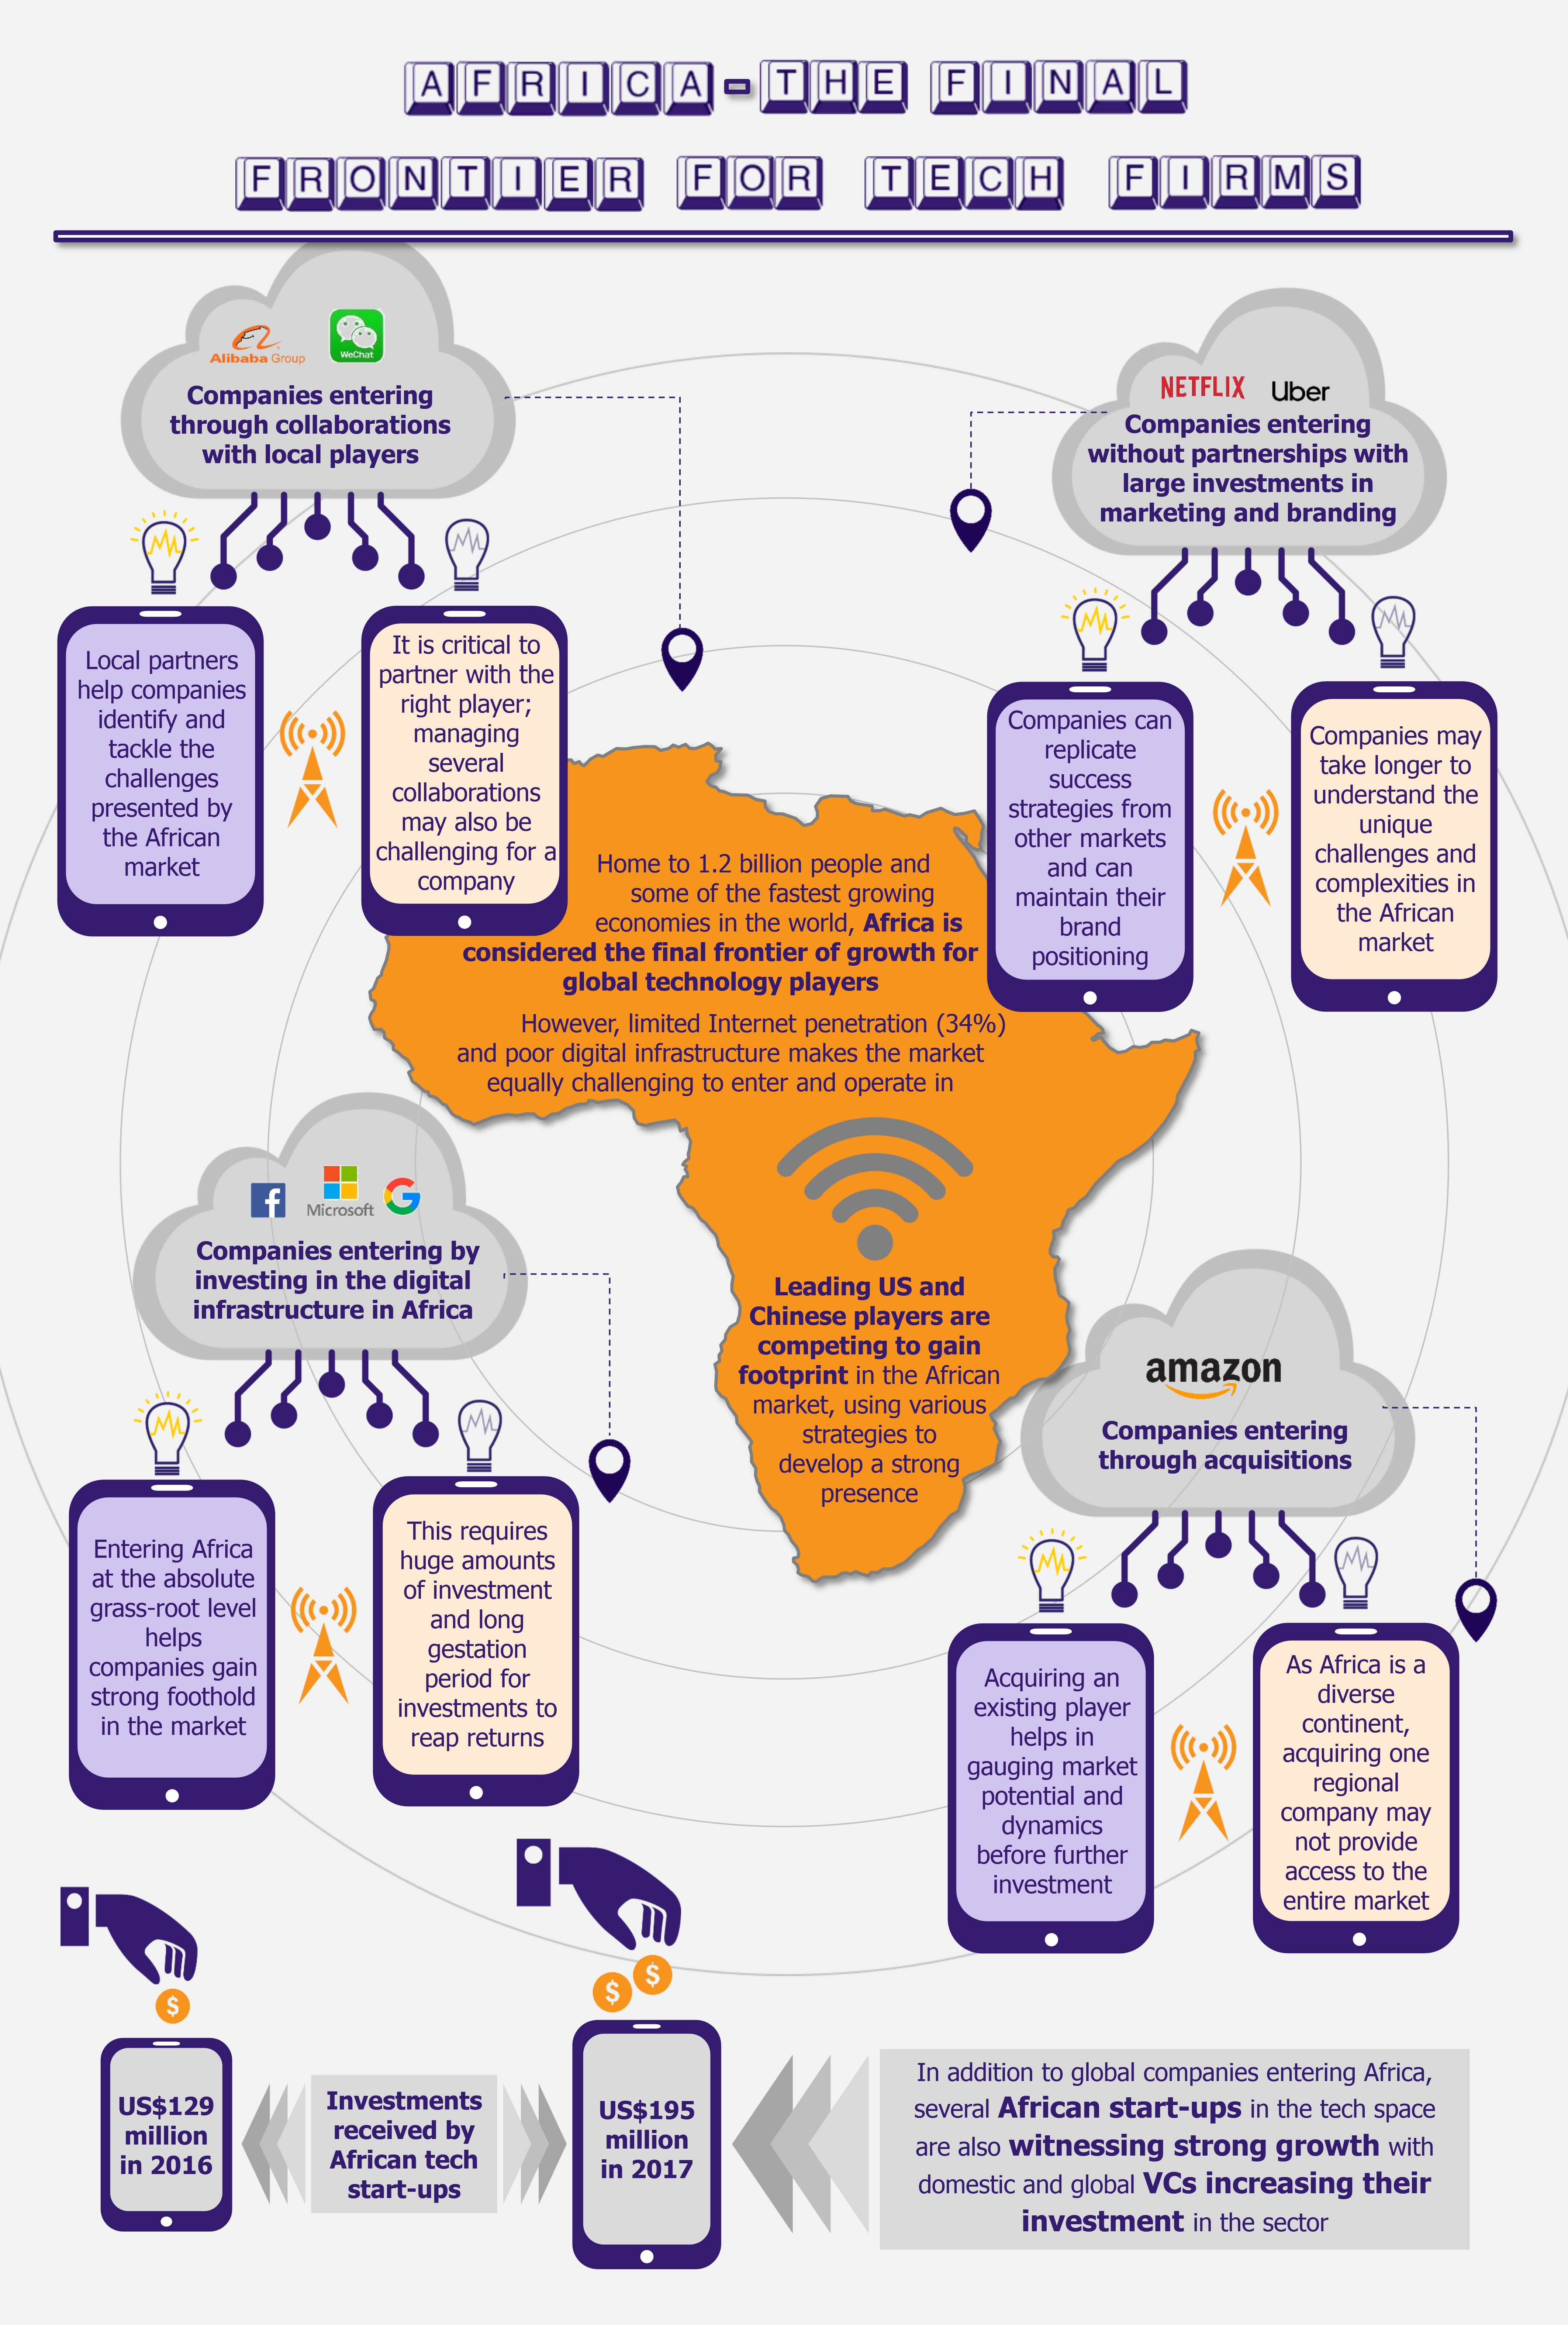 Connecting Africa – Global Technology Firms Gaining a Foothold in the Market